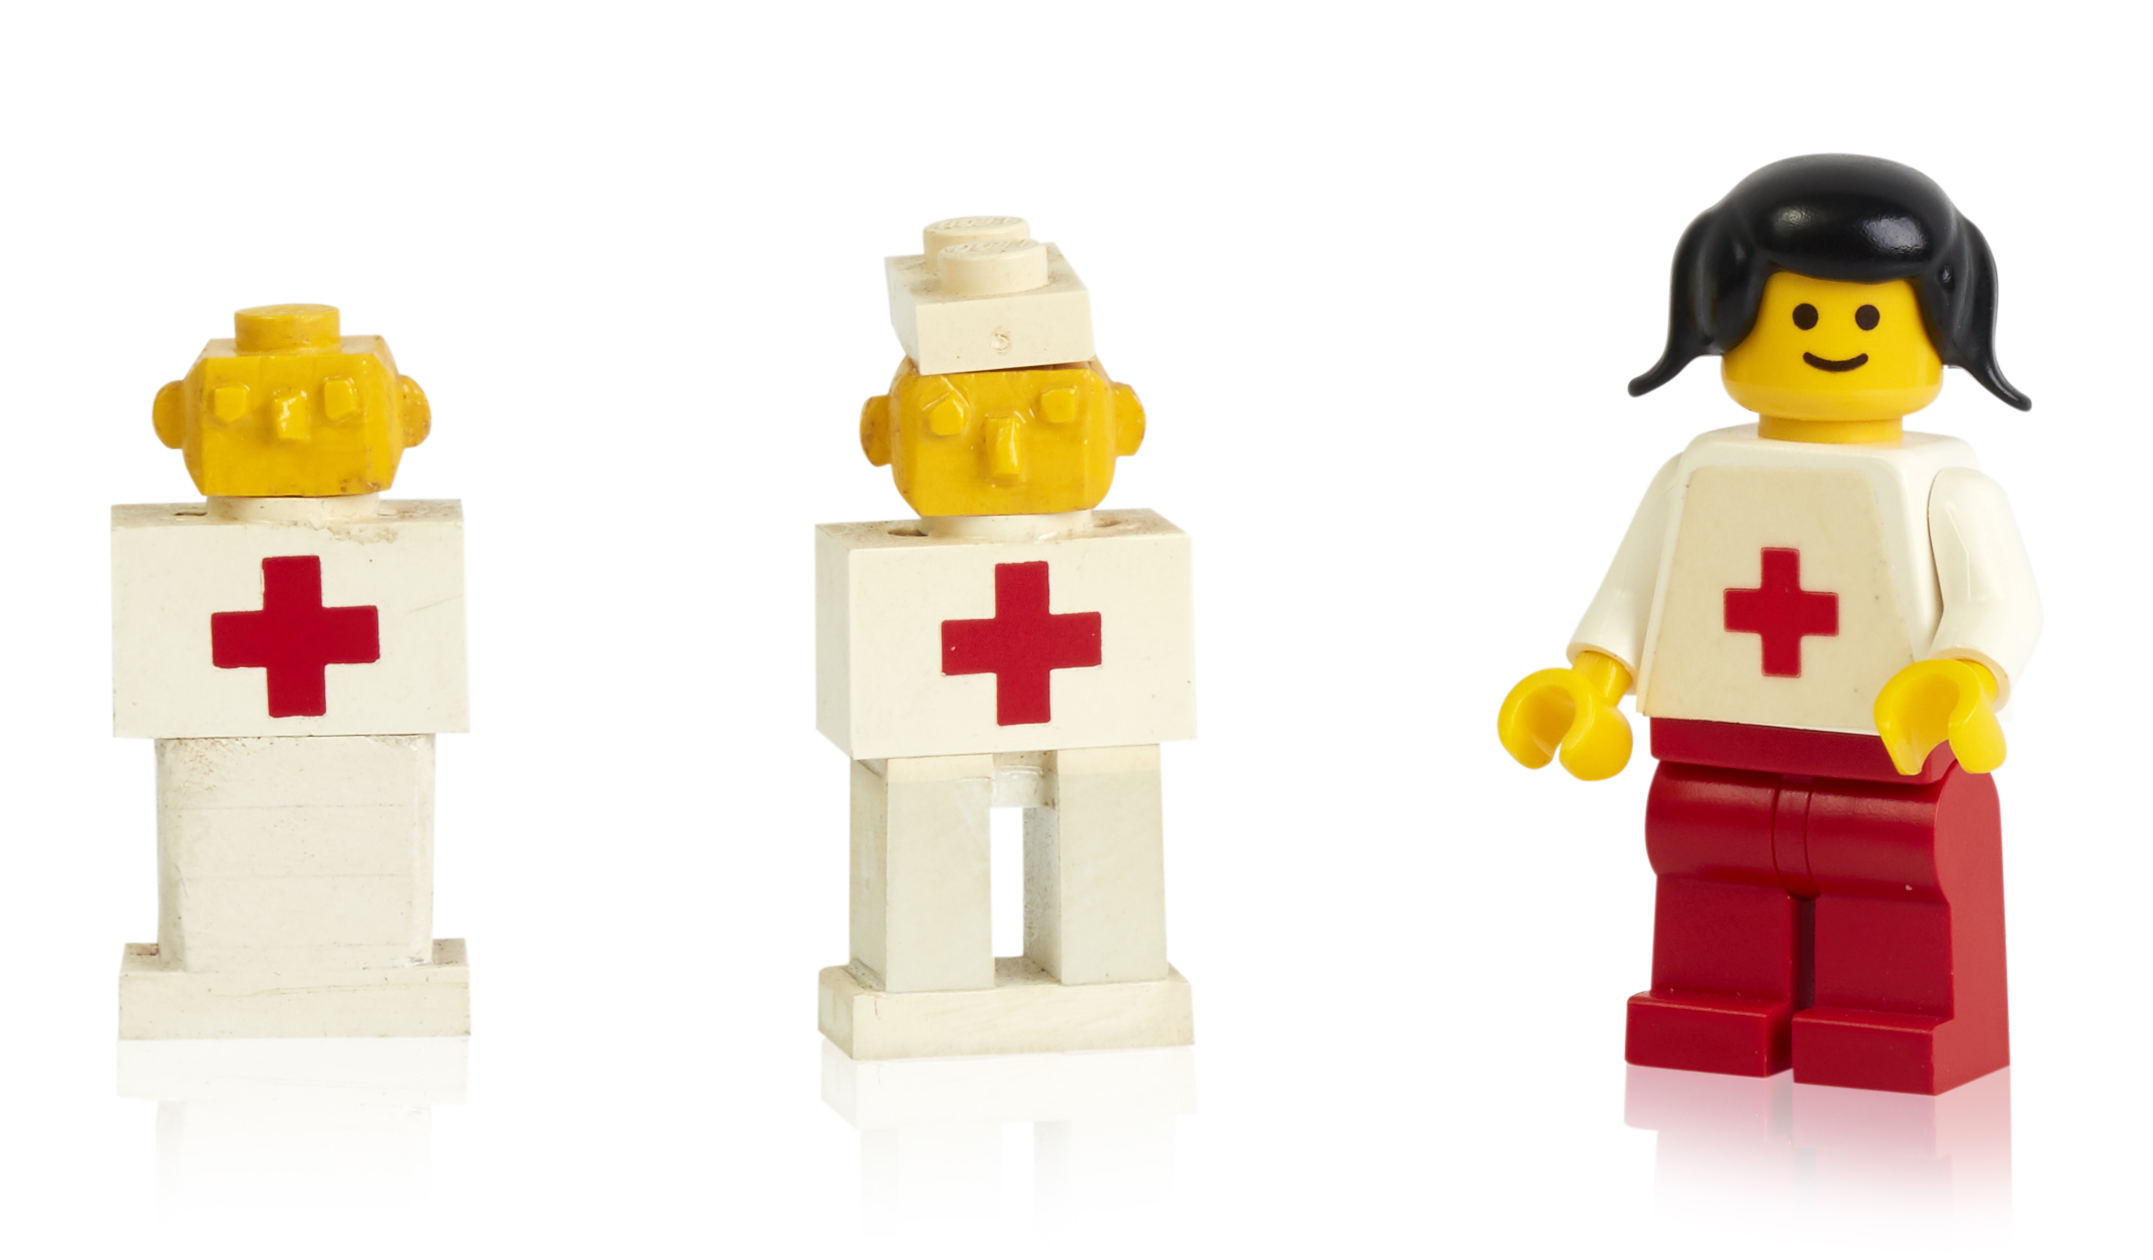 Early prototype minifigures